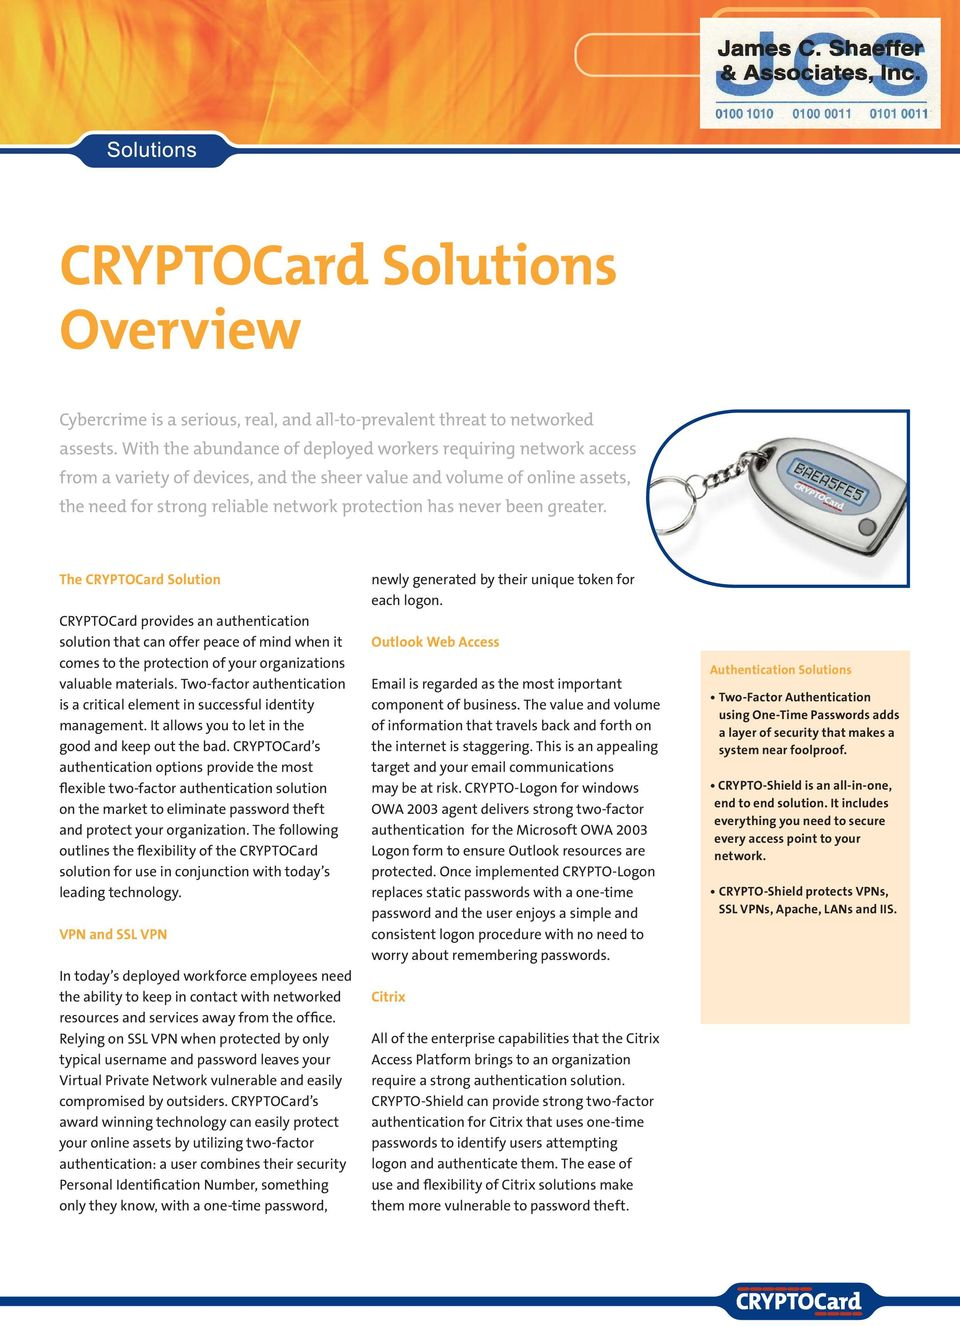 been greater. The CRYPTOCard Solution CRYPTOCard provides an authentication solution that can offer peace of mind when it comes to the protection of your organizations valuable materials.